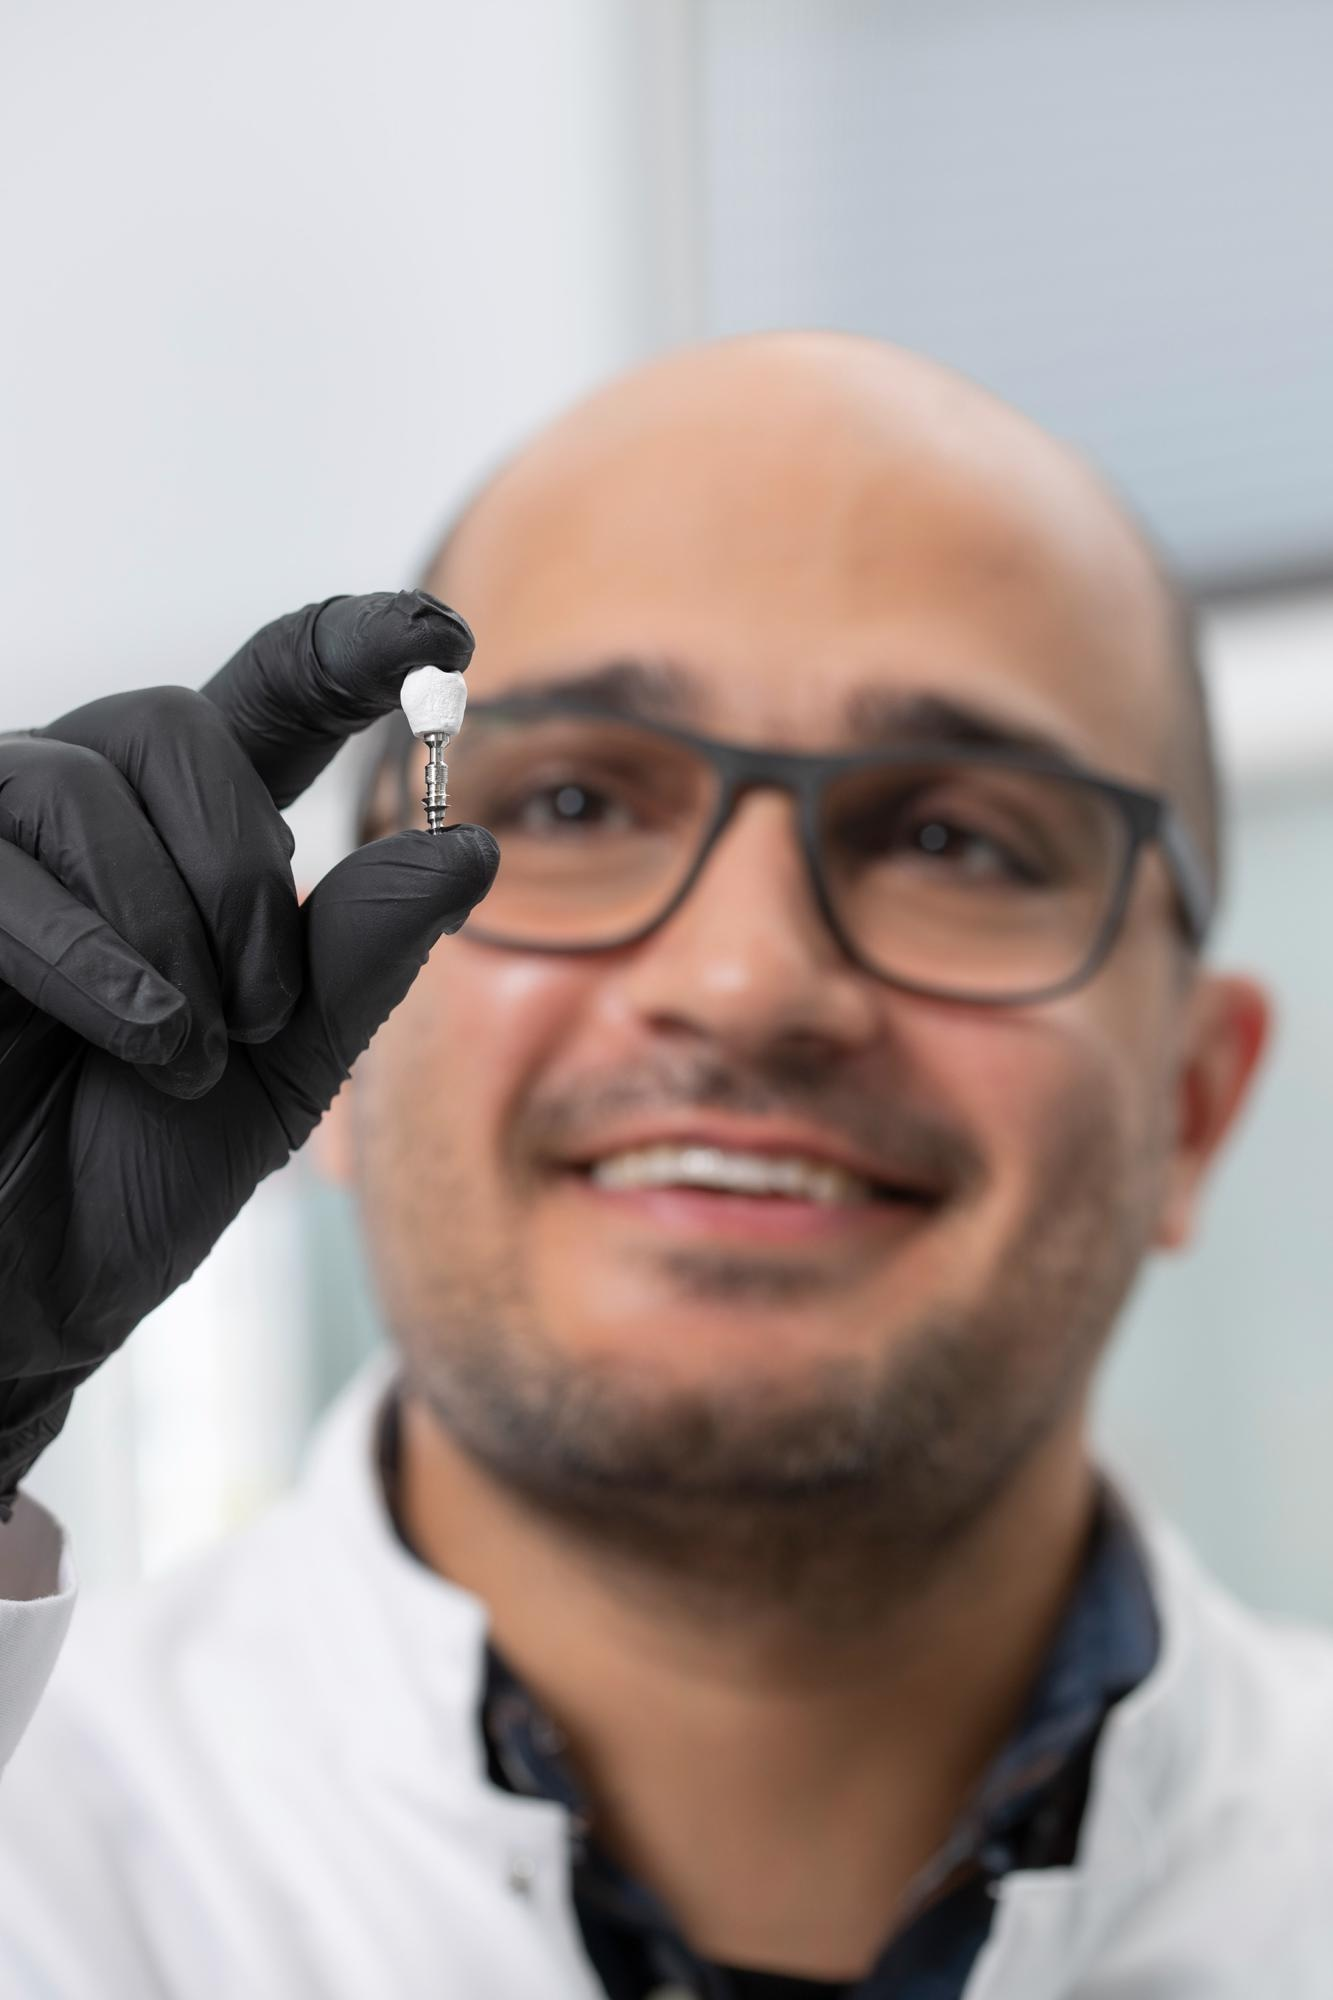 New Dental Implant Crowns Made of Cellulose-Based Nanocomposites.